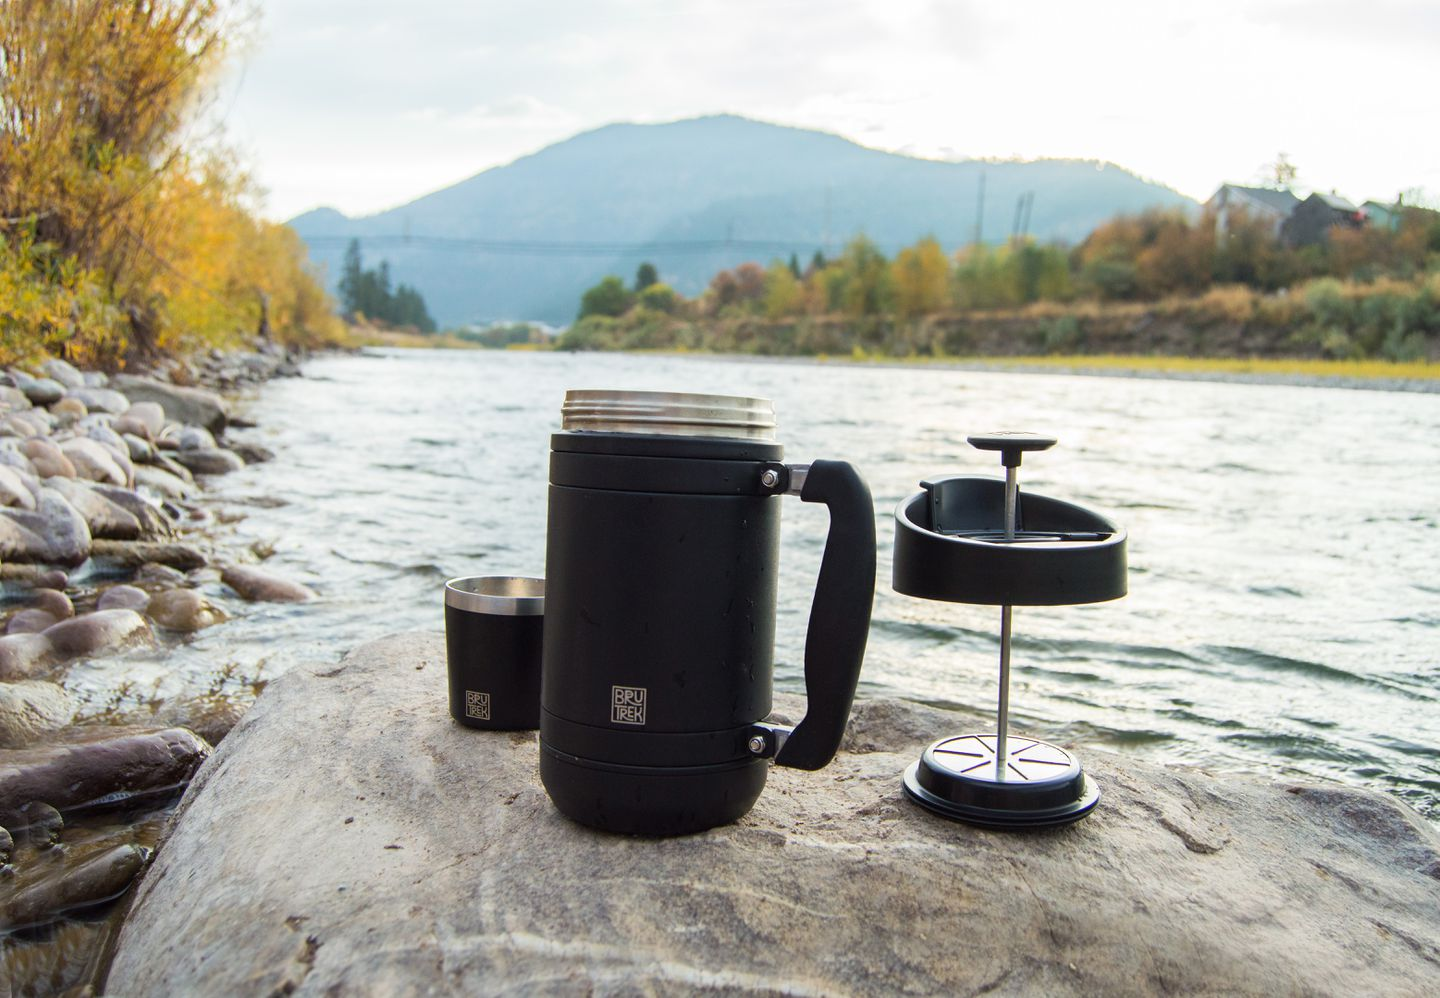 Use Planetary Design's new Basecamp French Press to create your perfect cup of java.